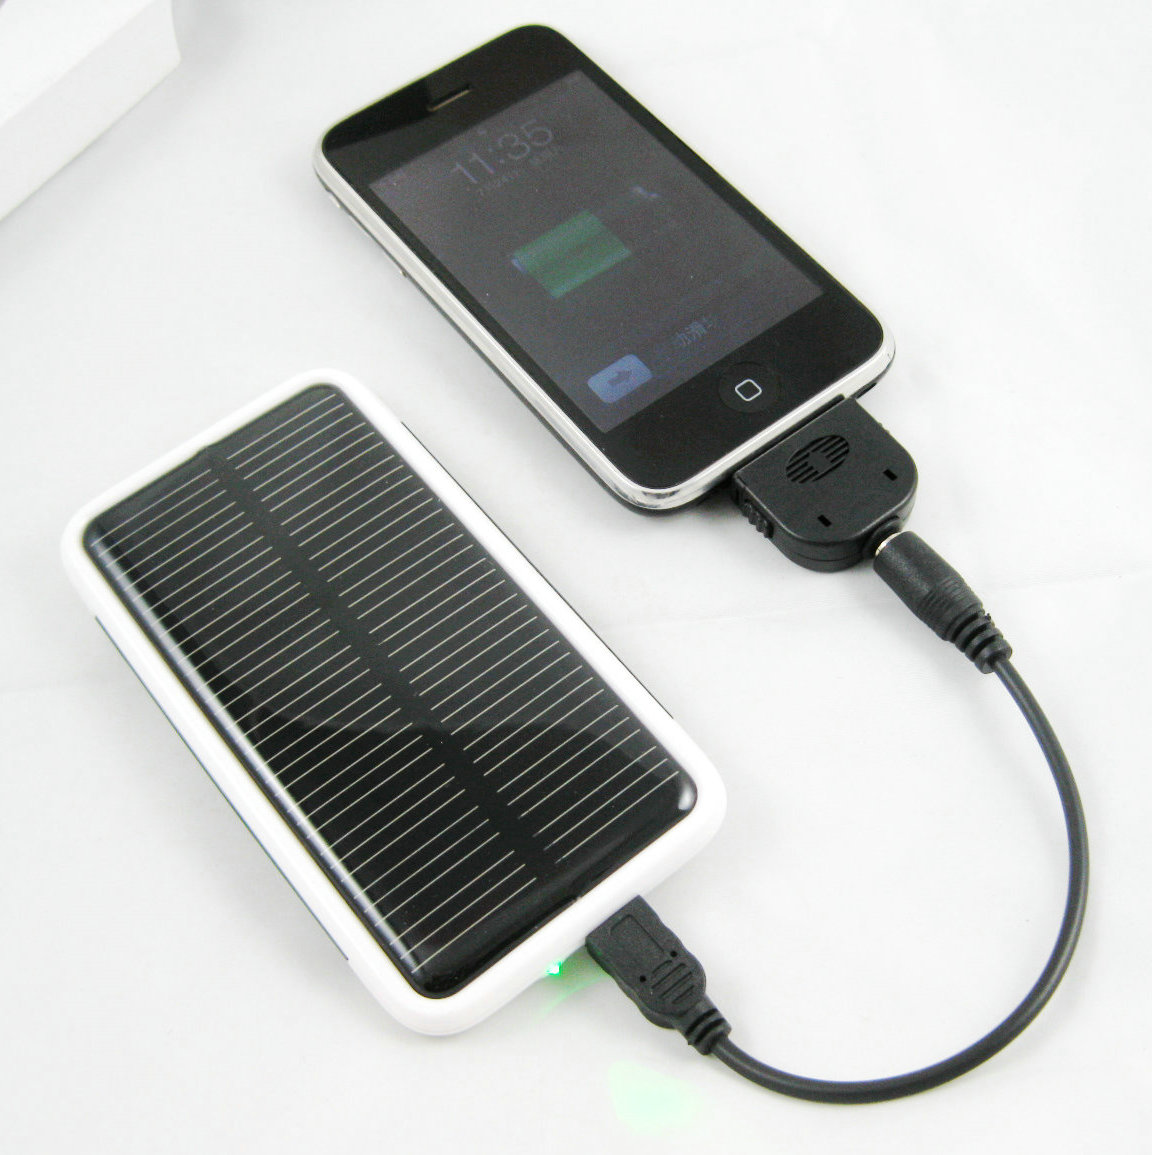 Power Full Solar Charger For Mobile In Pakistan